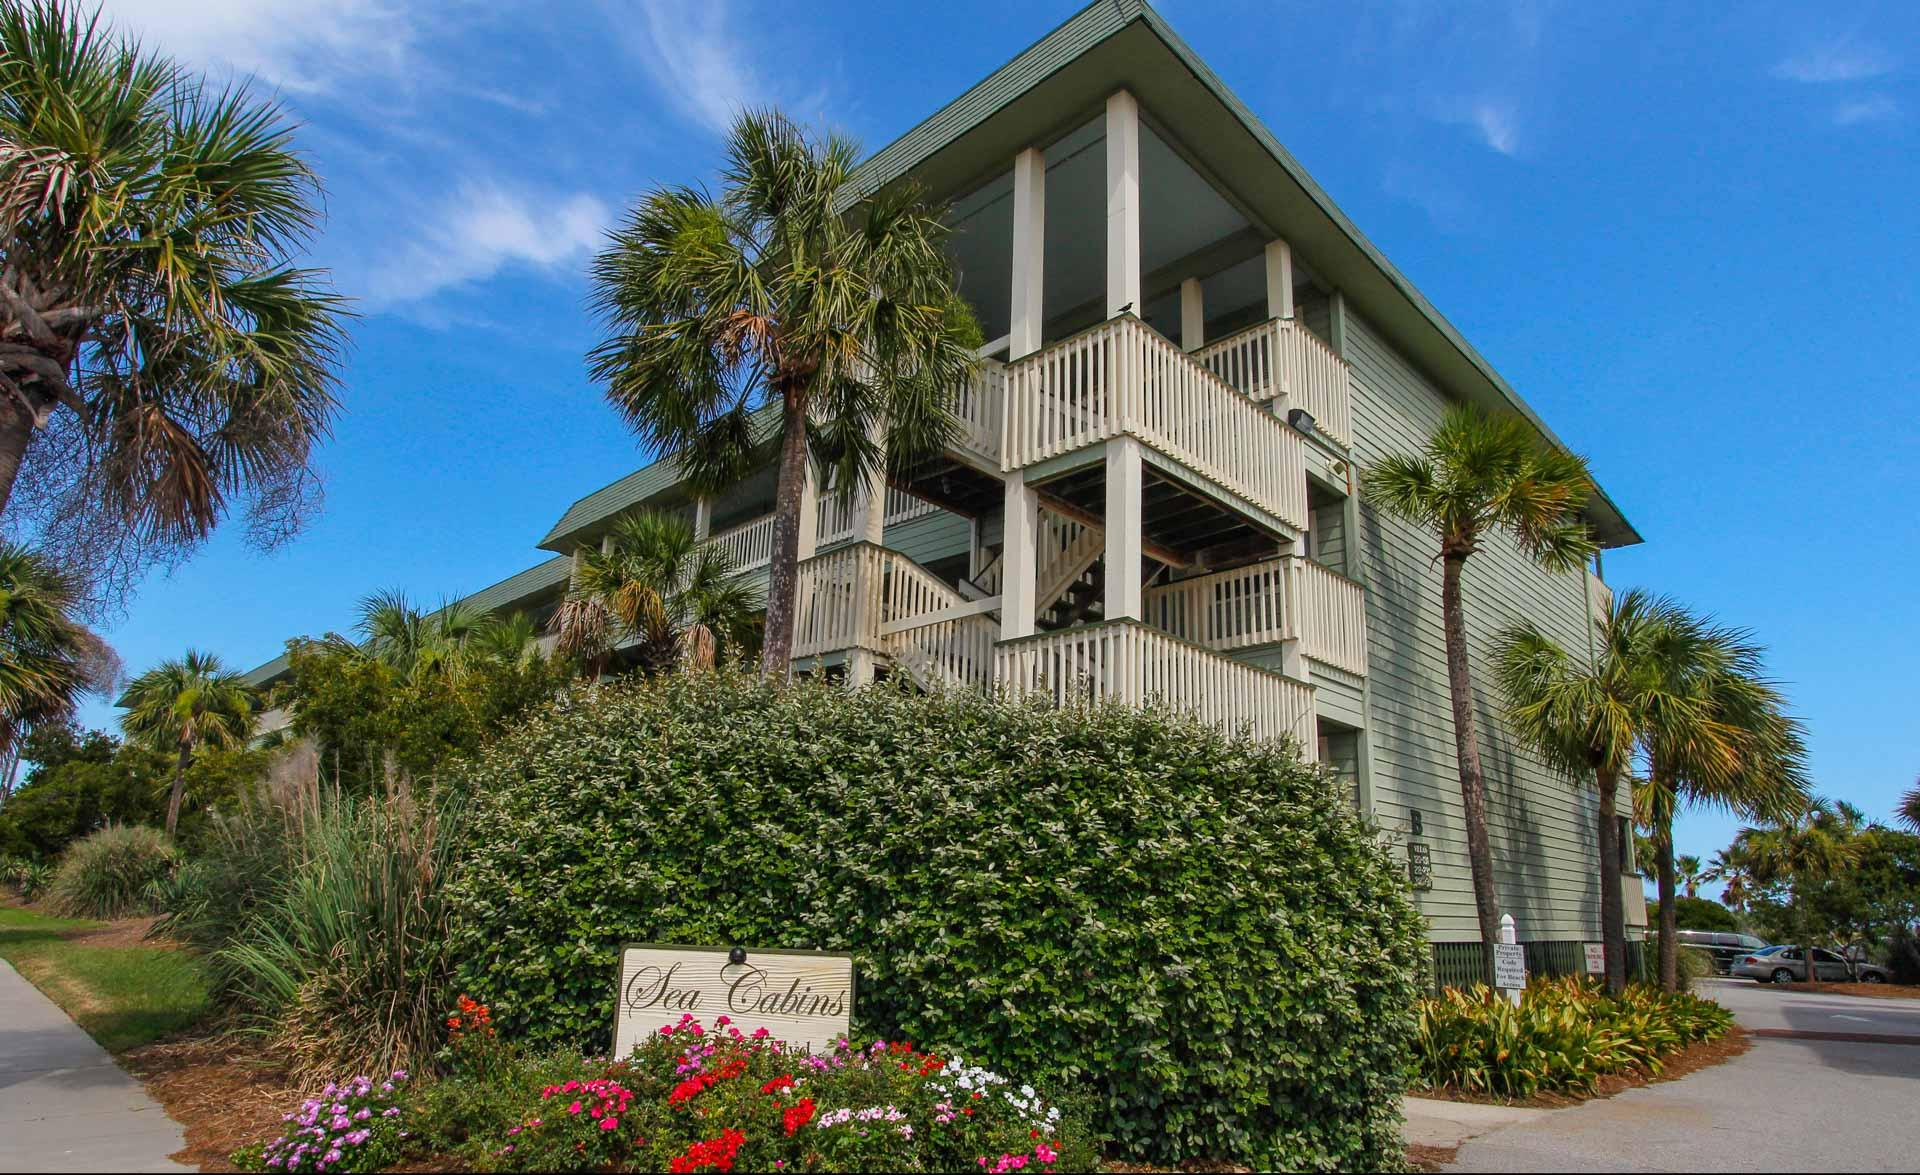 Sea Cabin On The Ocean Homes For Sale - 1300 Ocean, Isle of Palms, SC - 16